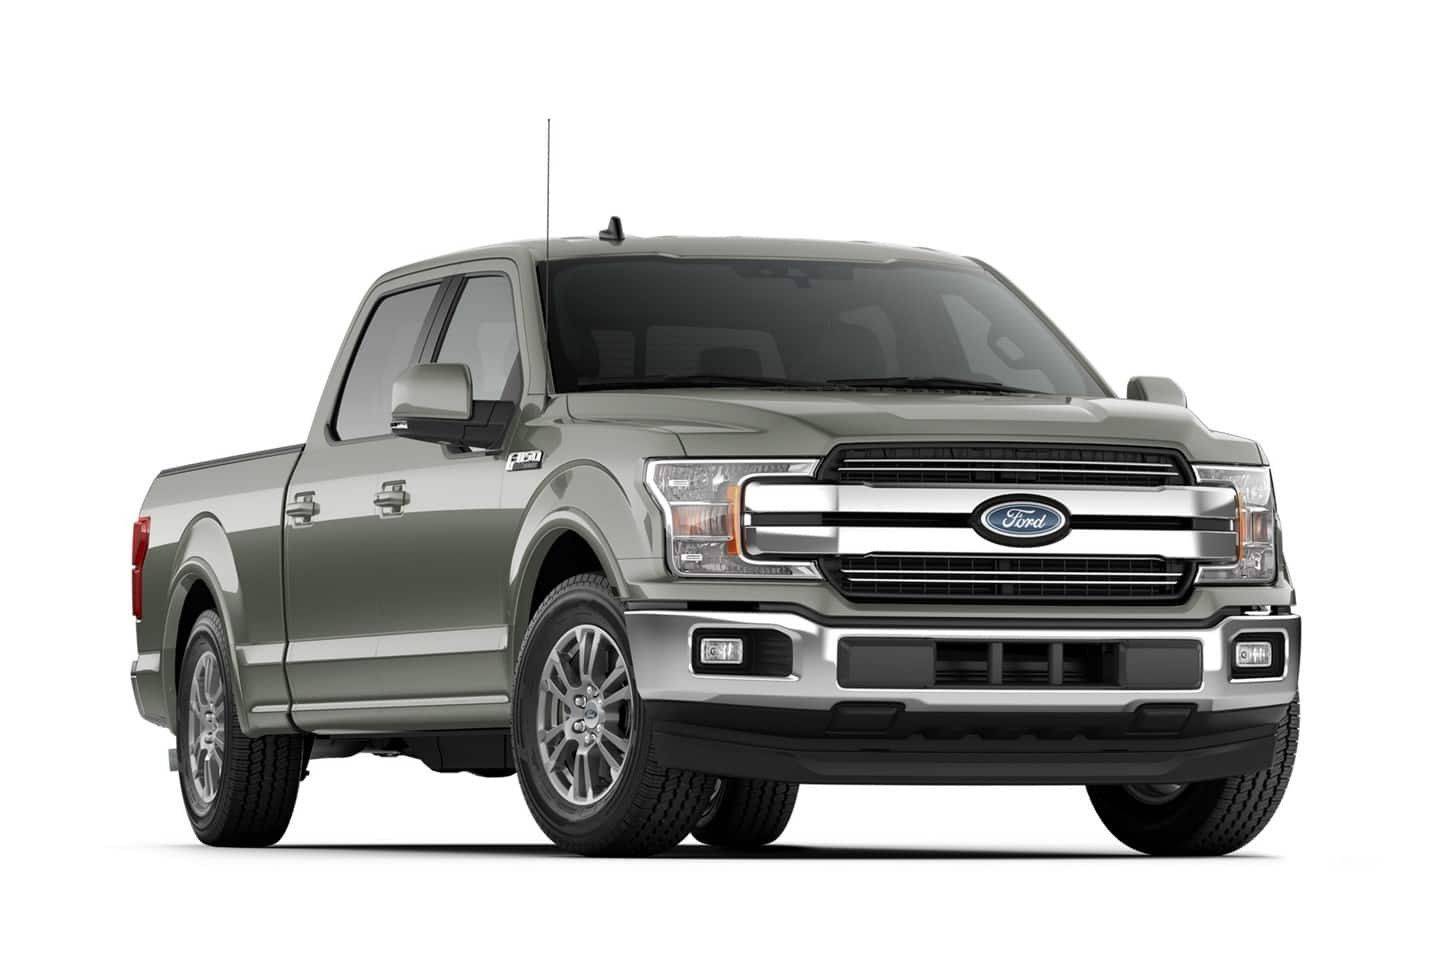 2020 Ford Explorer Xlt Price Price For 2020 Ford Explorer Xlt Price Review Specs And Release Date In 2020 Ford F150 F150 2019 Ford